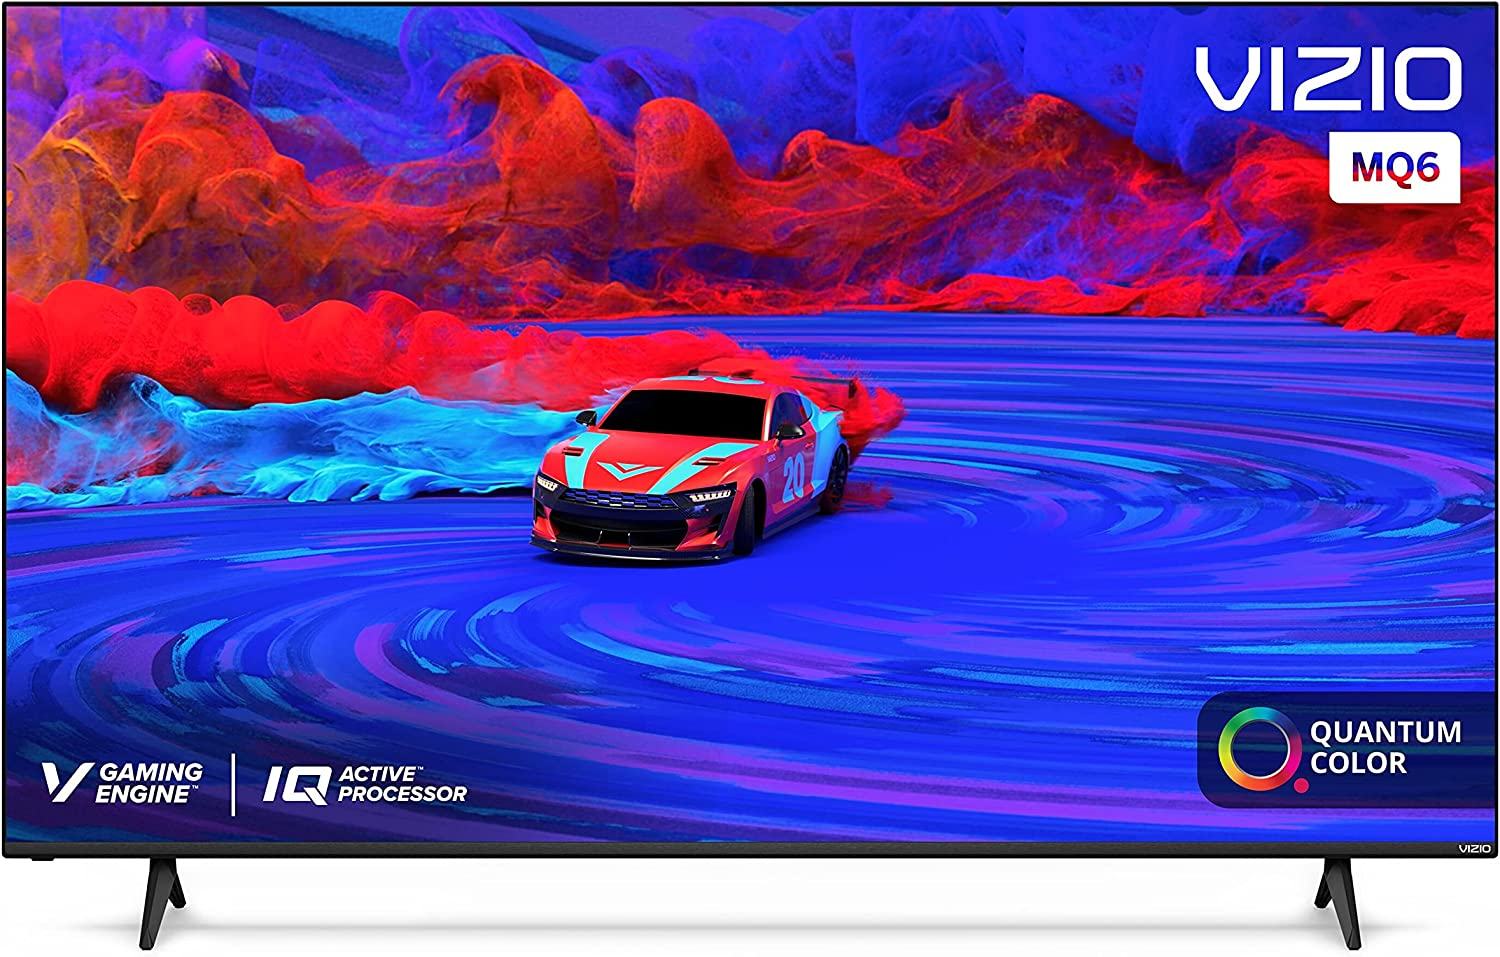 VIZIO 65-Inch M-Series Quantum 4K UHD LED HDR Smart TV with Apple AirPlay and Chromecast Built-in, Dolby Vision, HDR10+, HDMI 2.1, Variable Refresh Rate, M65Q6-J09, 2021 Model